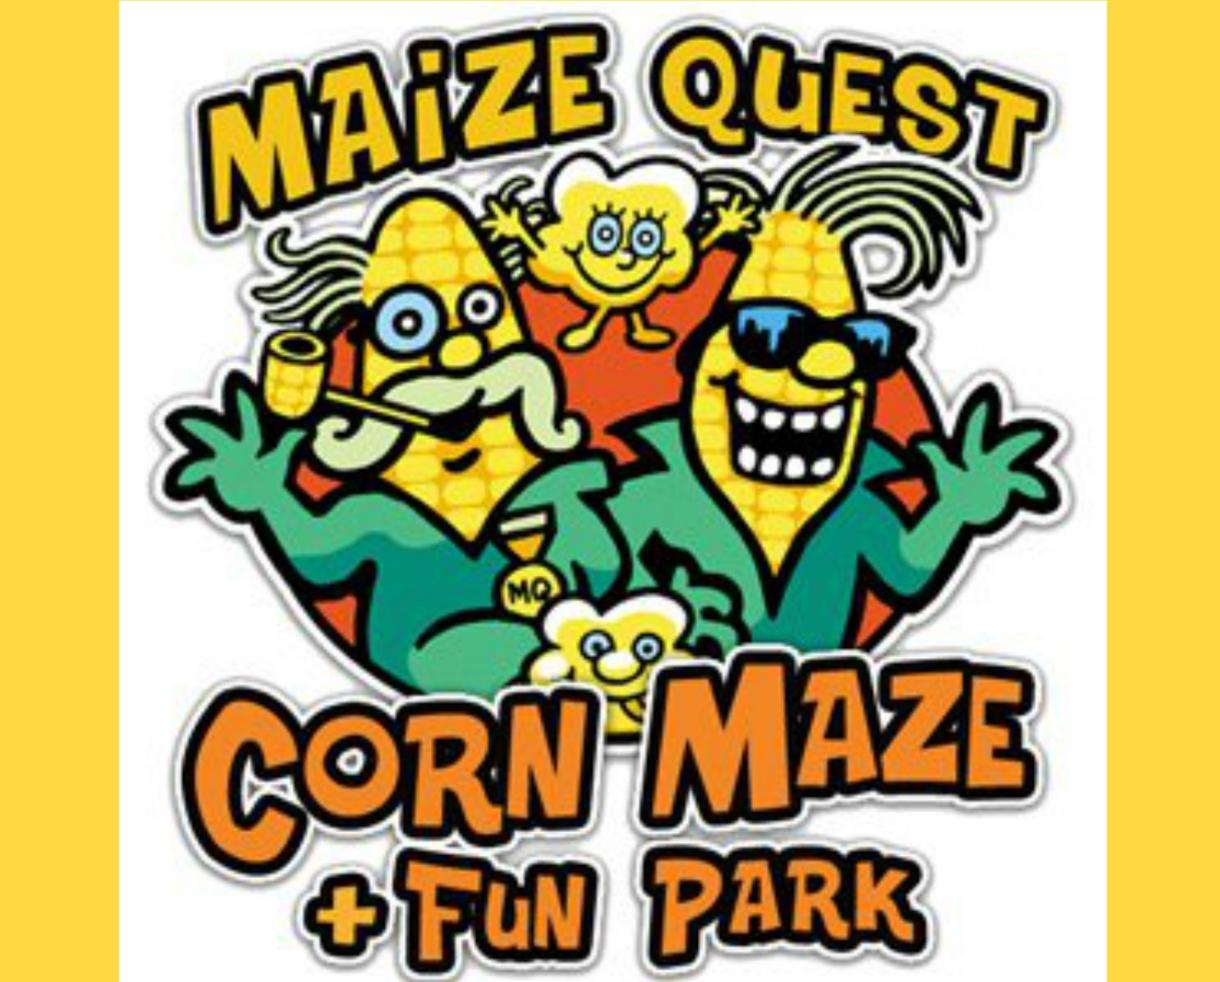 $49 for Family 4-Pack: Arabian Nights Corn Maze, Half-Bushel of Pick Your Own Apples, Trackless Train Rides + Donut & Cider for Each Person at Maize Quest ($99 Value - 51% Off)